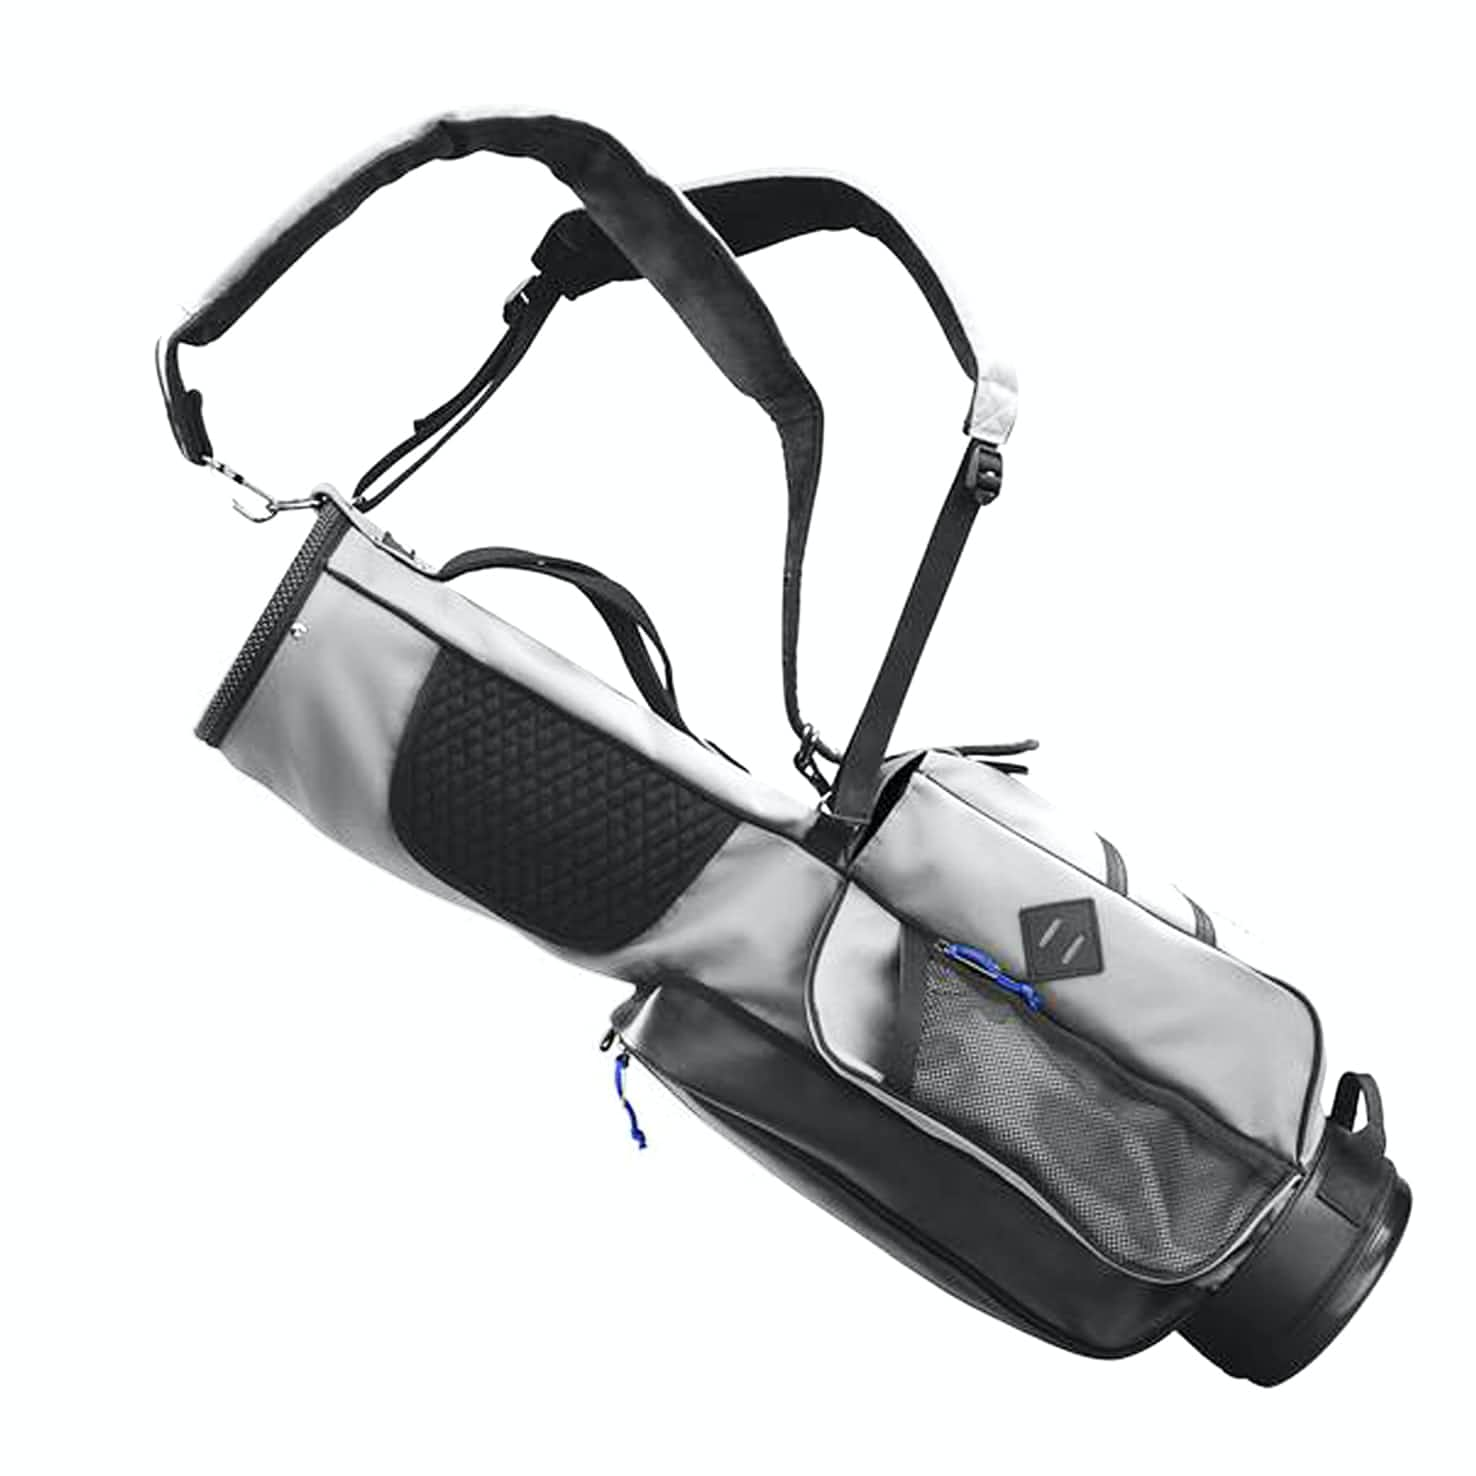 Utility Rover Bag Charcoal - 2019